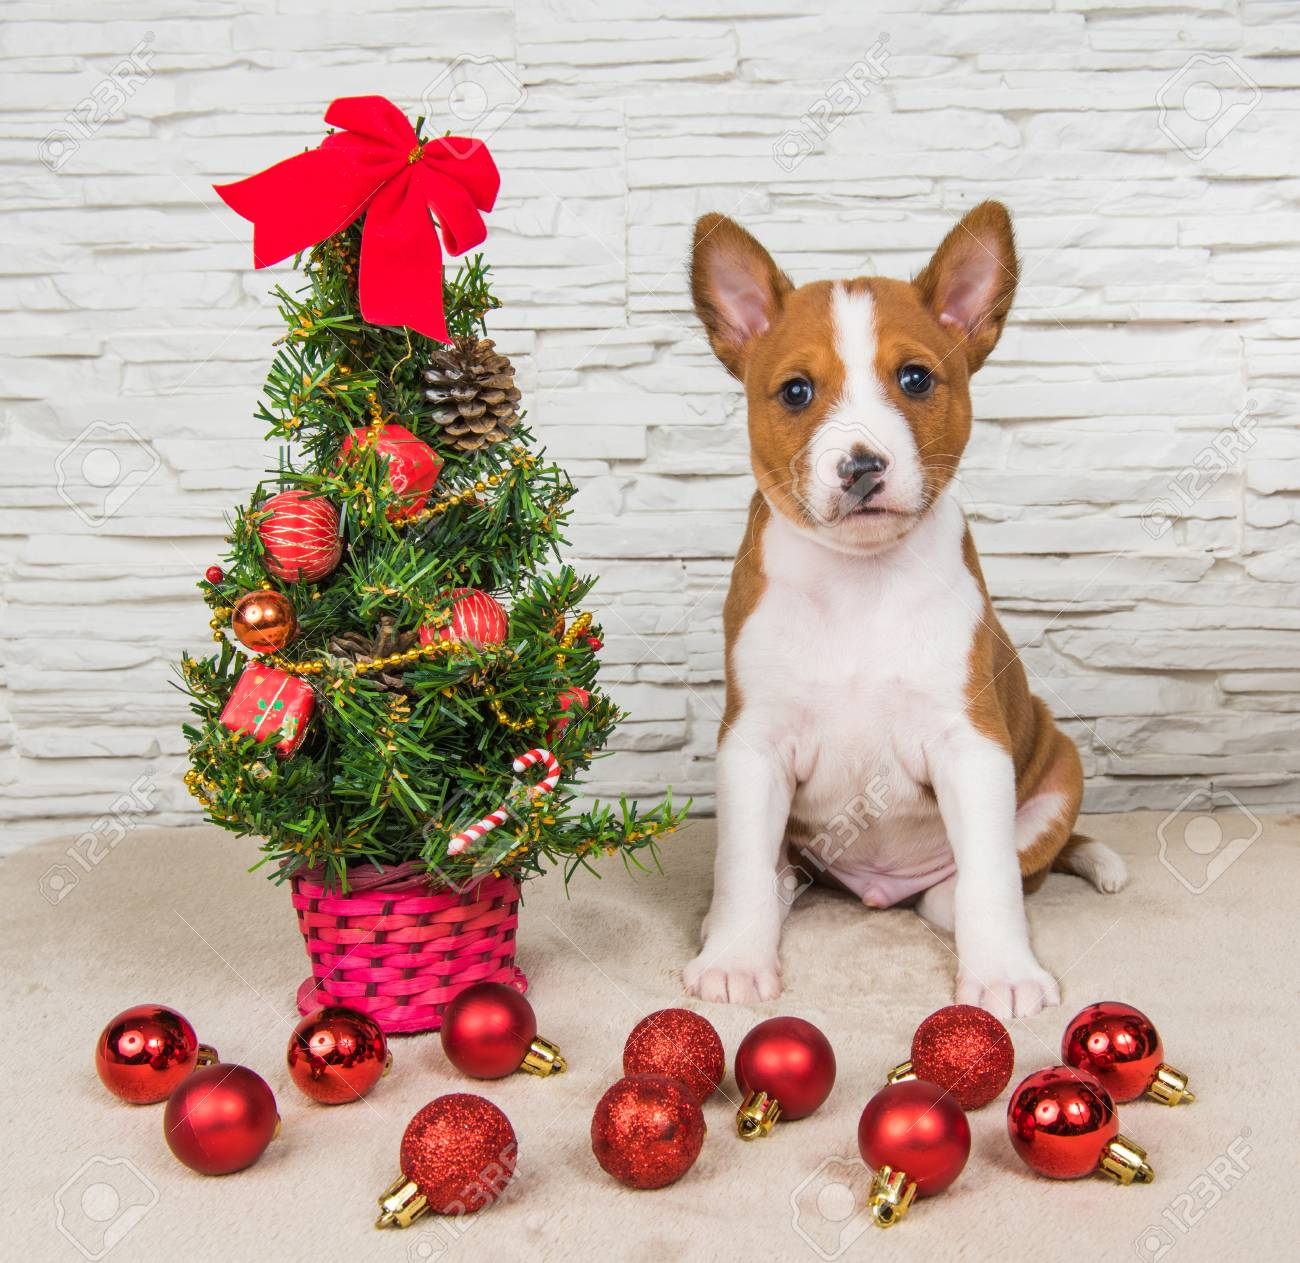 Christmas Dog.Funny Basenji Puppy Dog With New Year Christmas Tree With Gifts